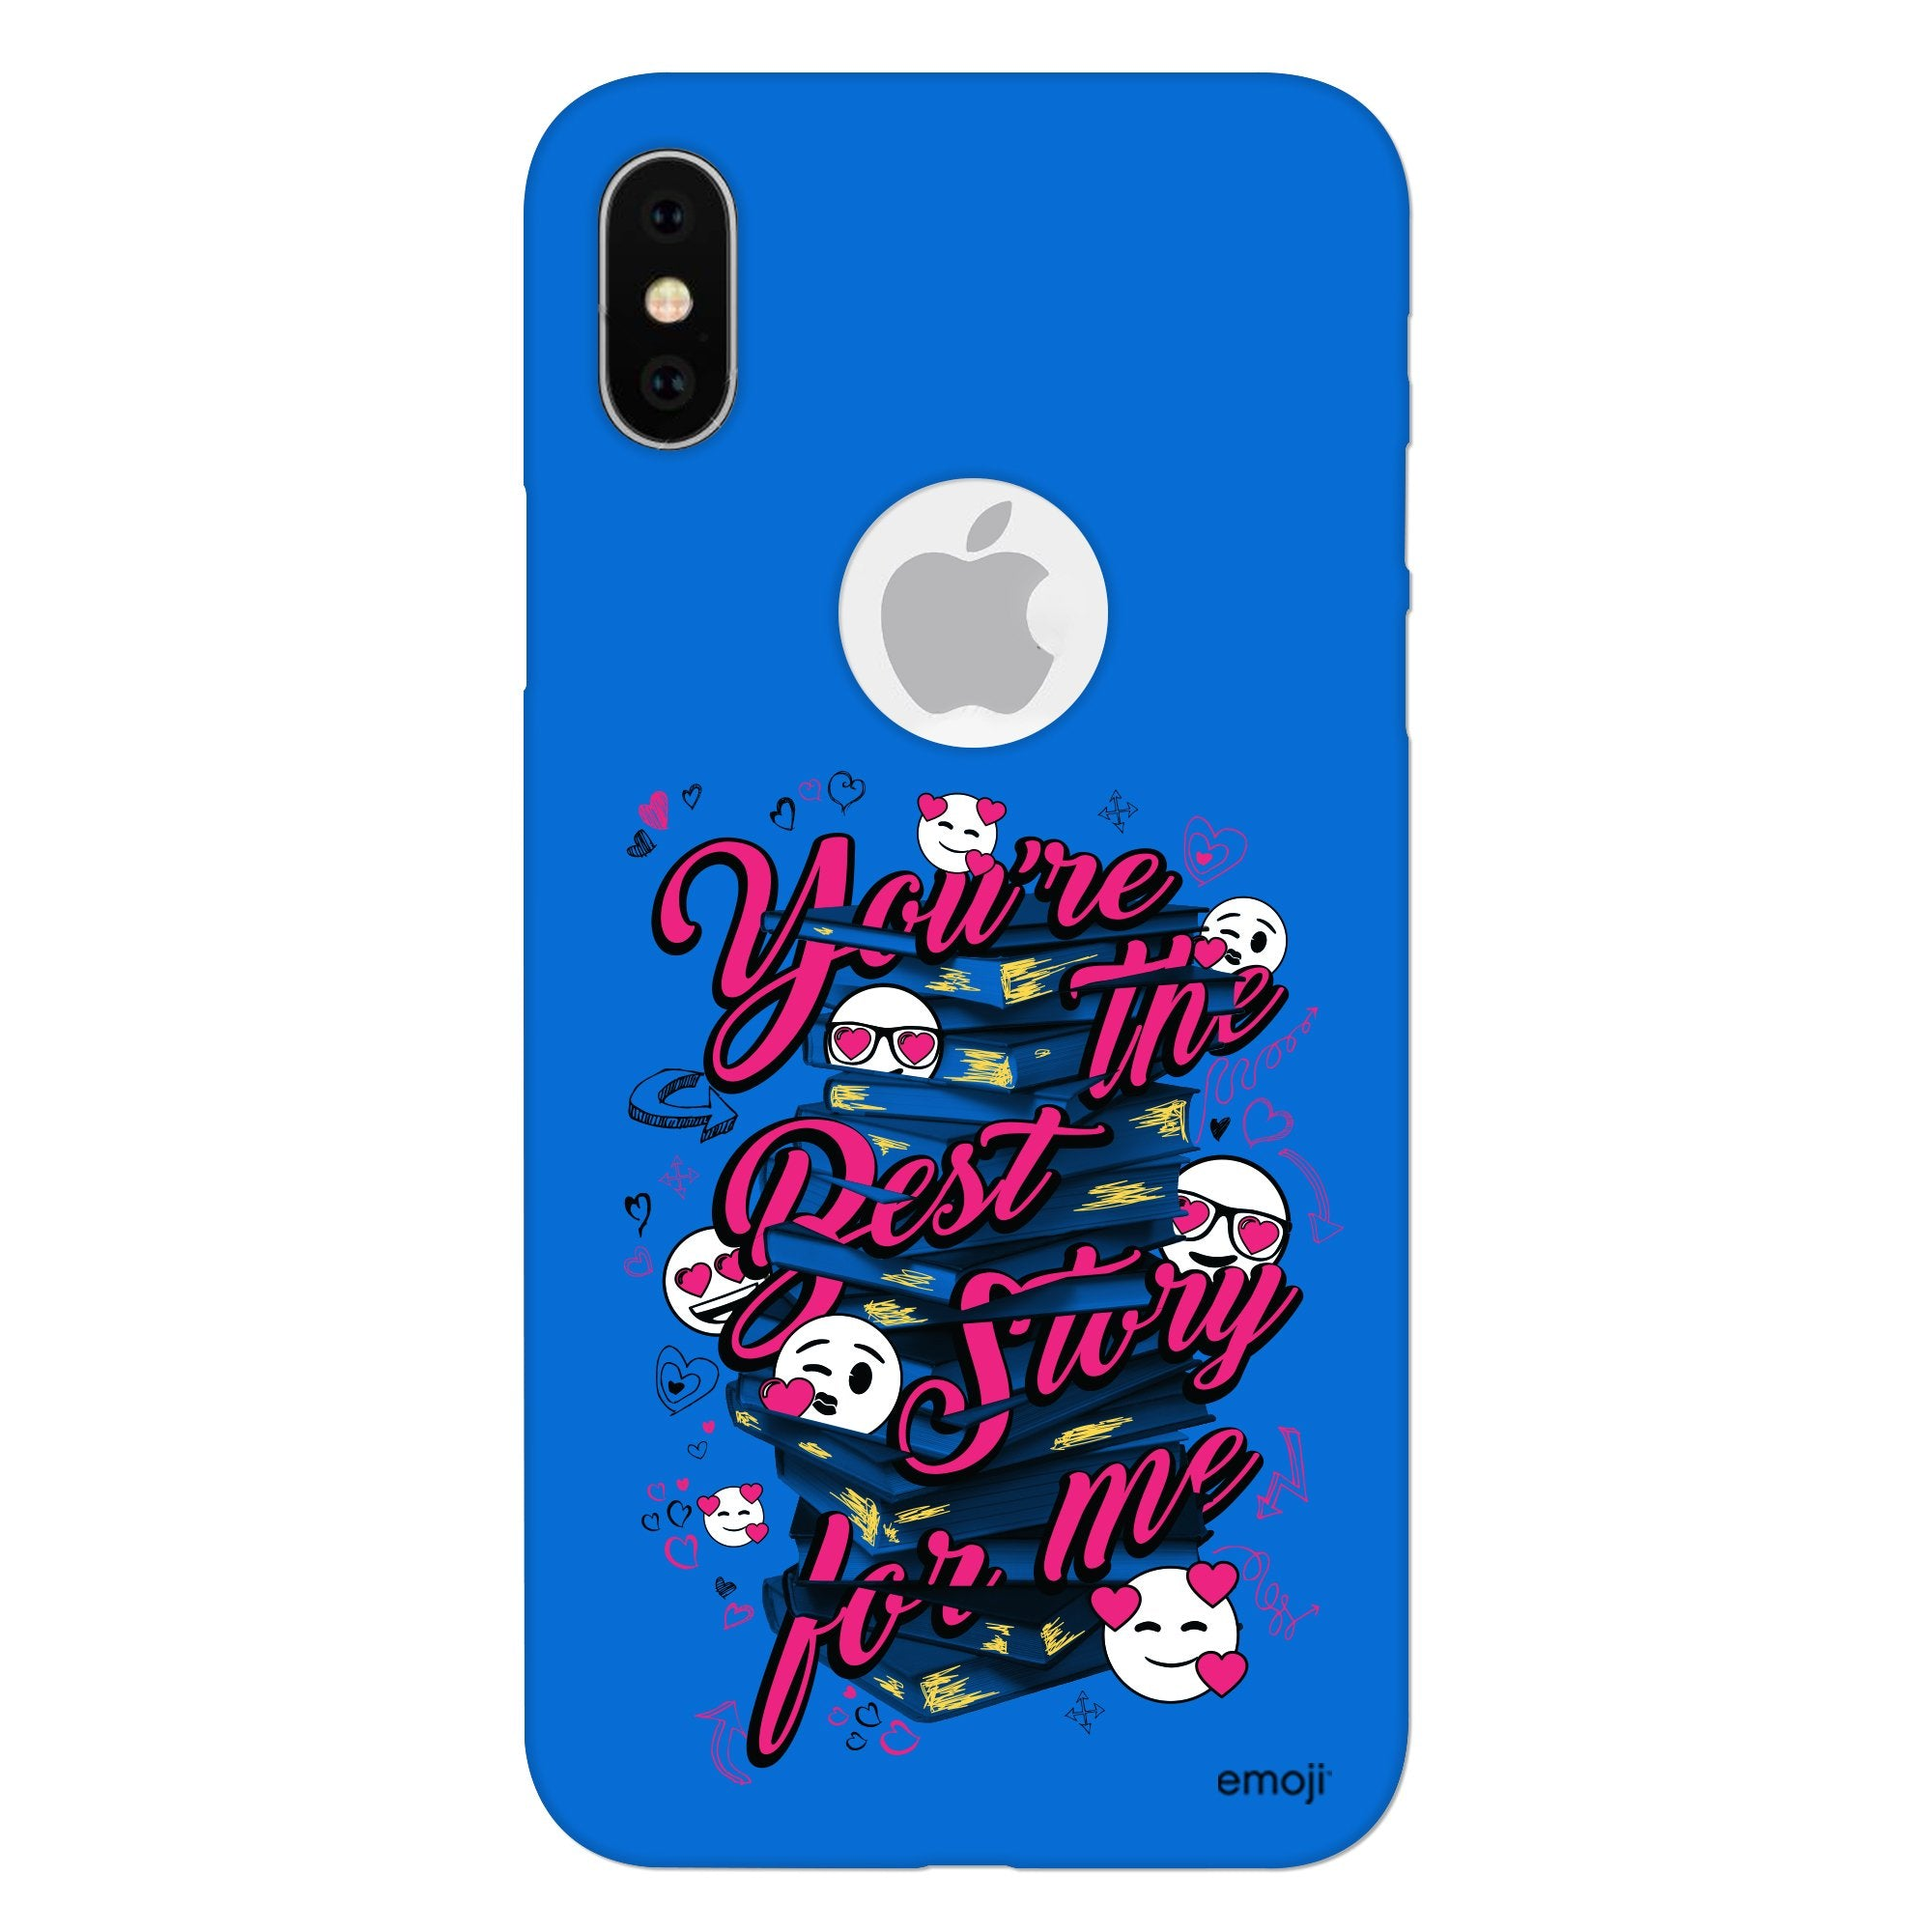 Official Licensed emoji Printed Mobile Case - You Are The Best